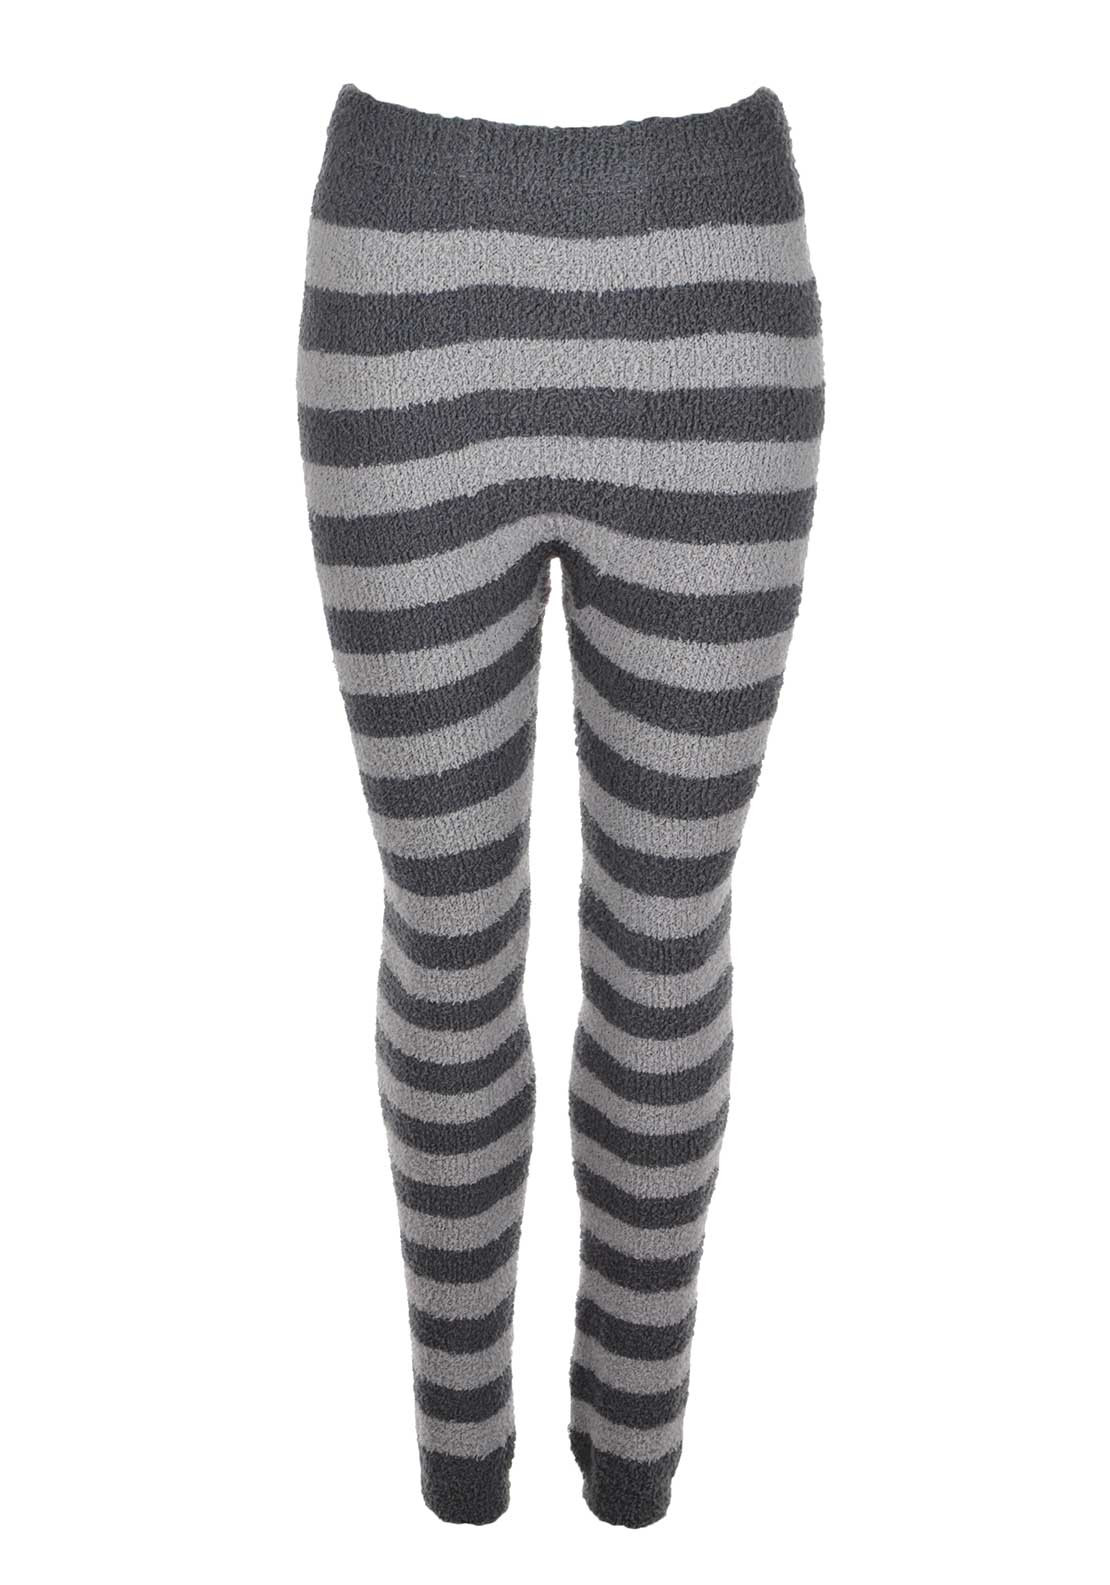 Rebelle Striped Fleece Legging Pyjama Bottoms, Grey